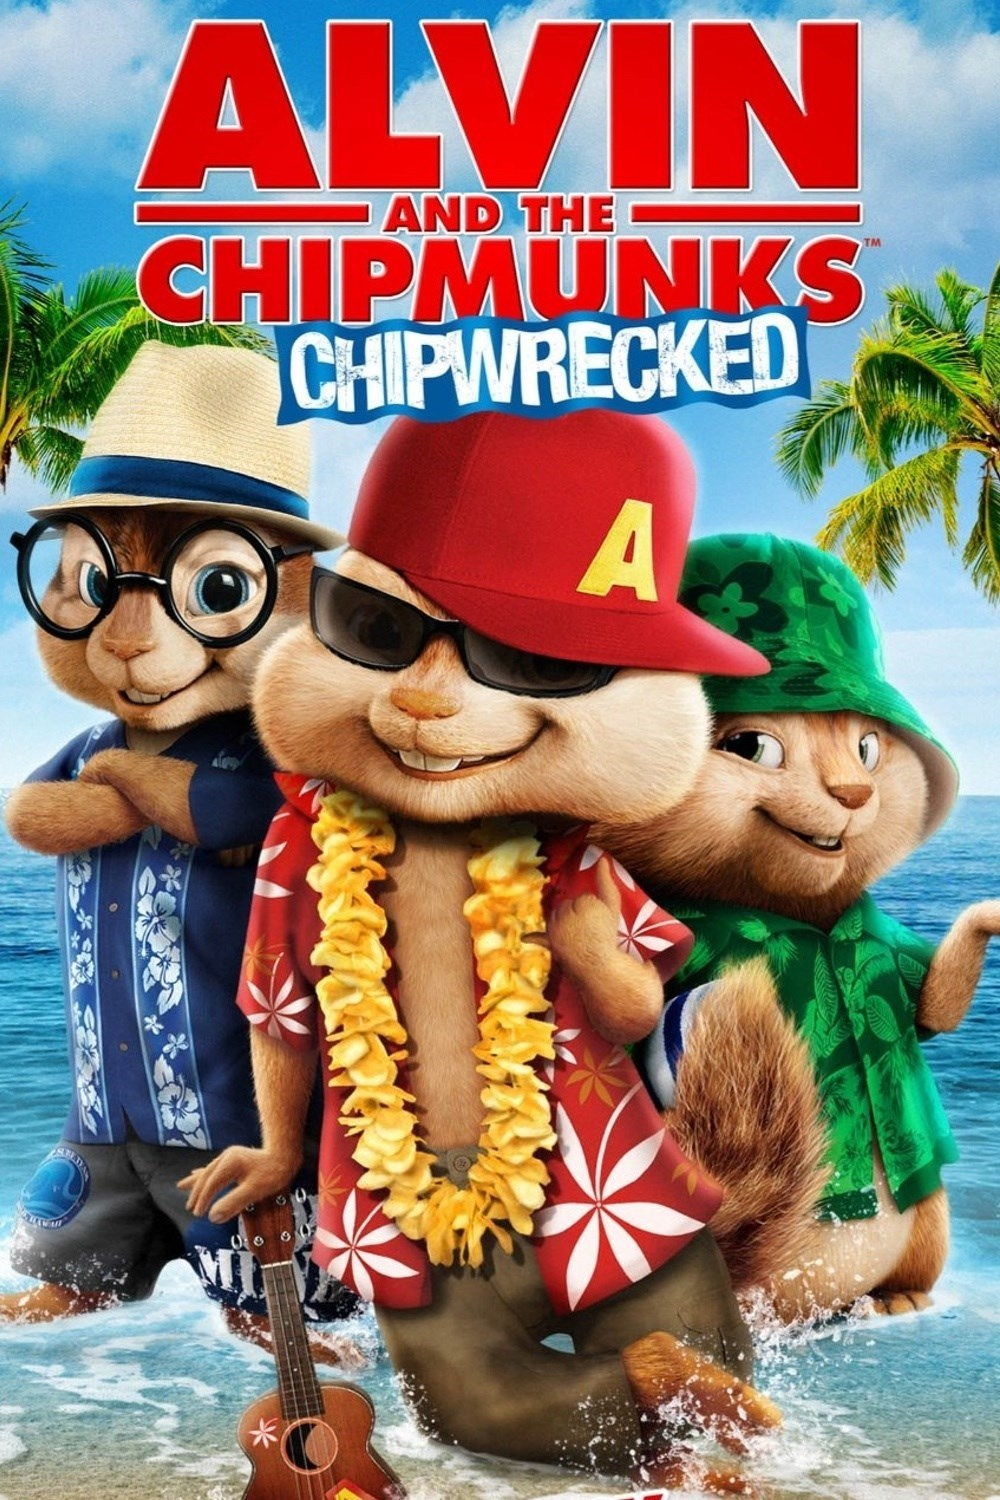 opening to alvin and the chipmunks: chipwrecked 2003 vhs